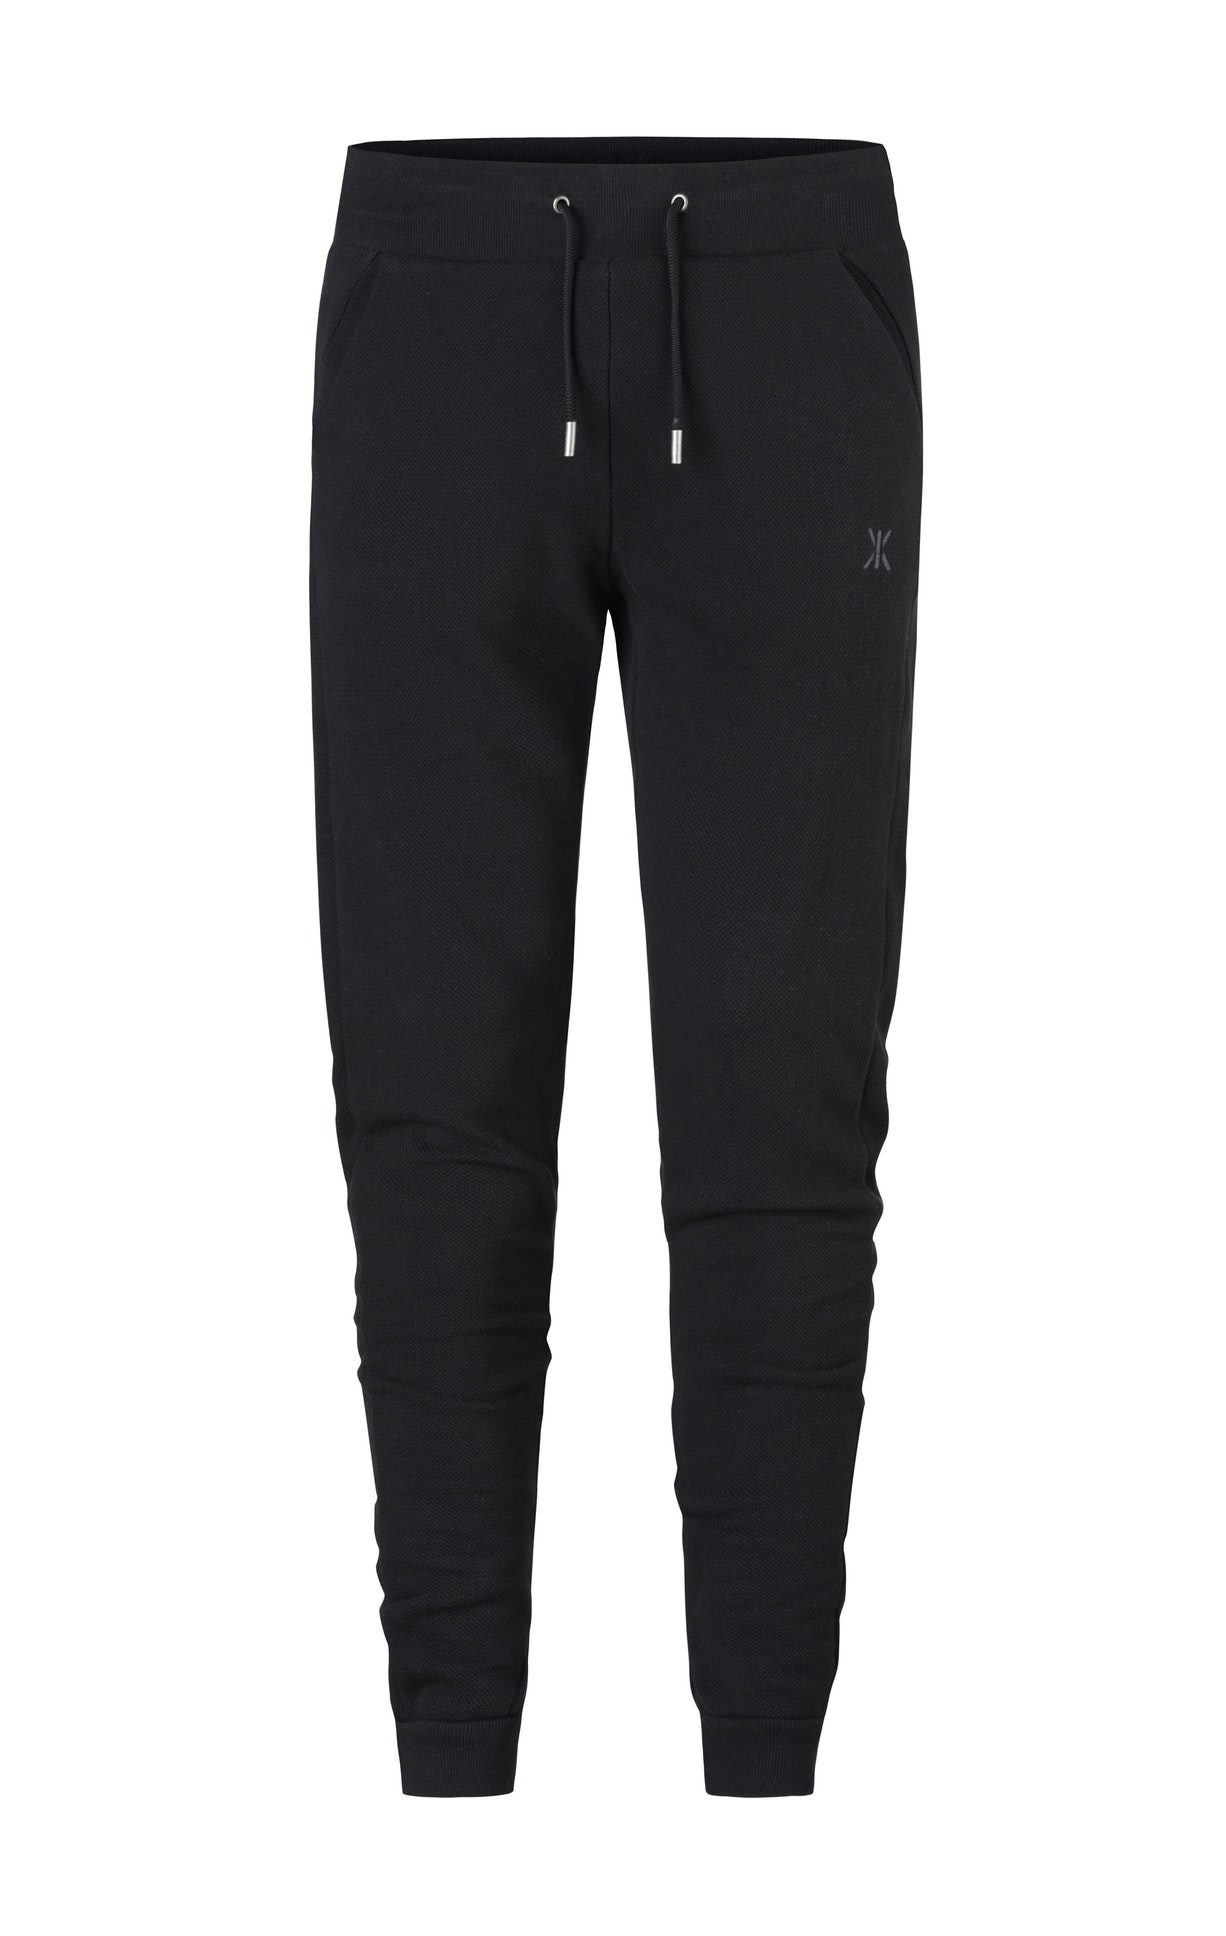 Slow Pant Black Fitted black jogger pant in premium cotton with piqué fabric structure and soft brushed inside. The jogger has an elastic waistband with drawstrings.